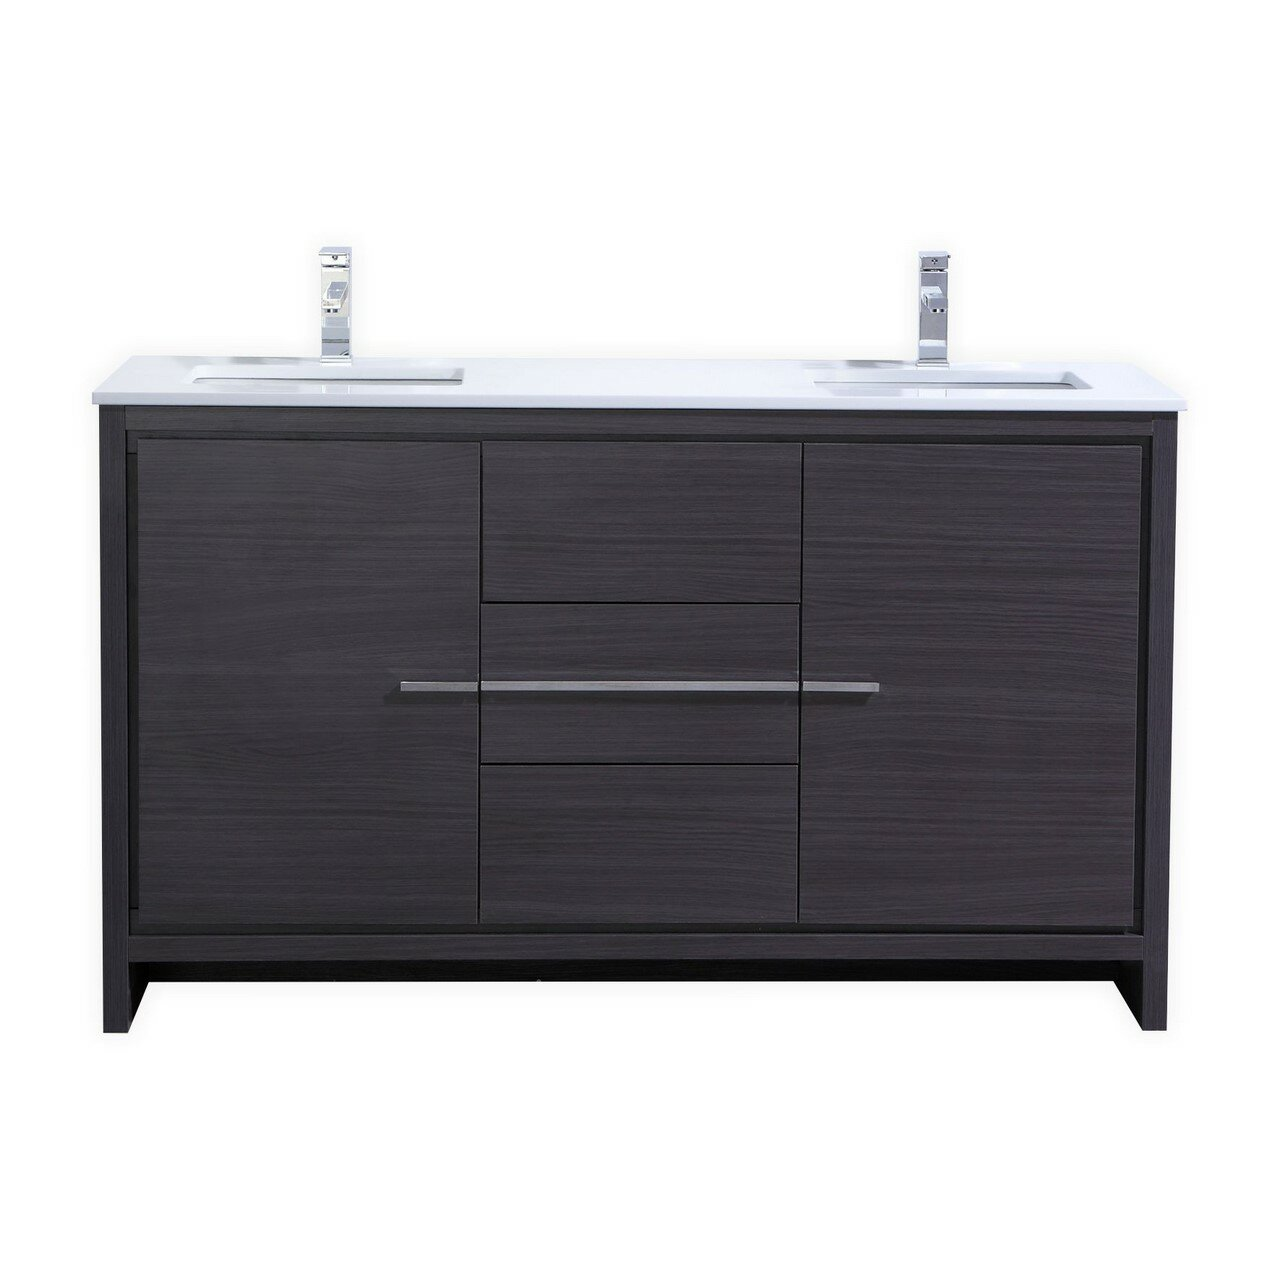 Kube bath dolce 60 double sink modern bathroom vanity - Modern double sink bathroom vanities ...